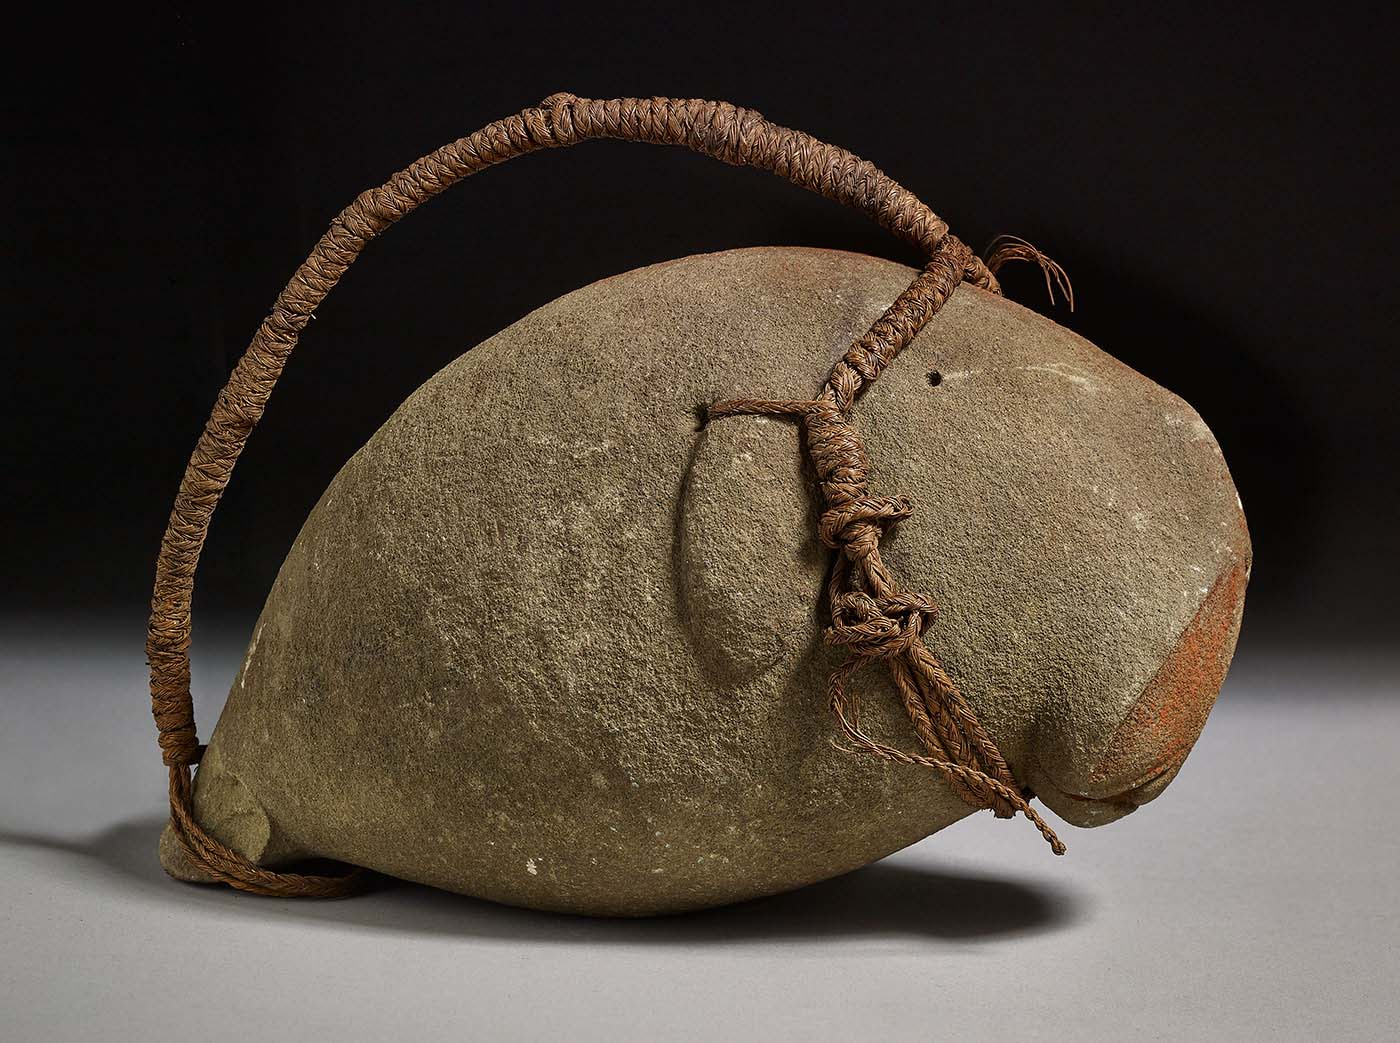 A dugong charm made from stone, ochre and fibre.